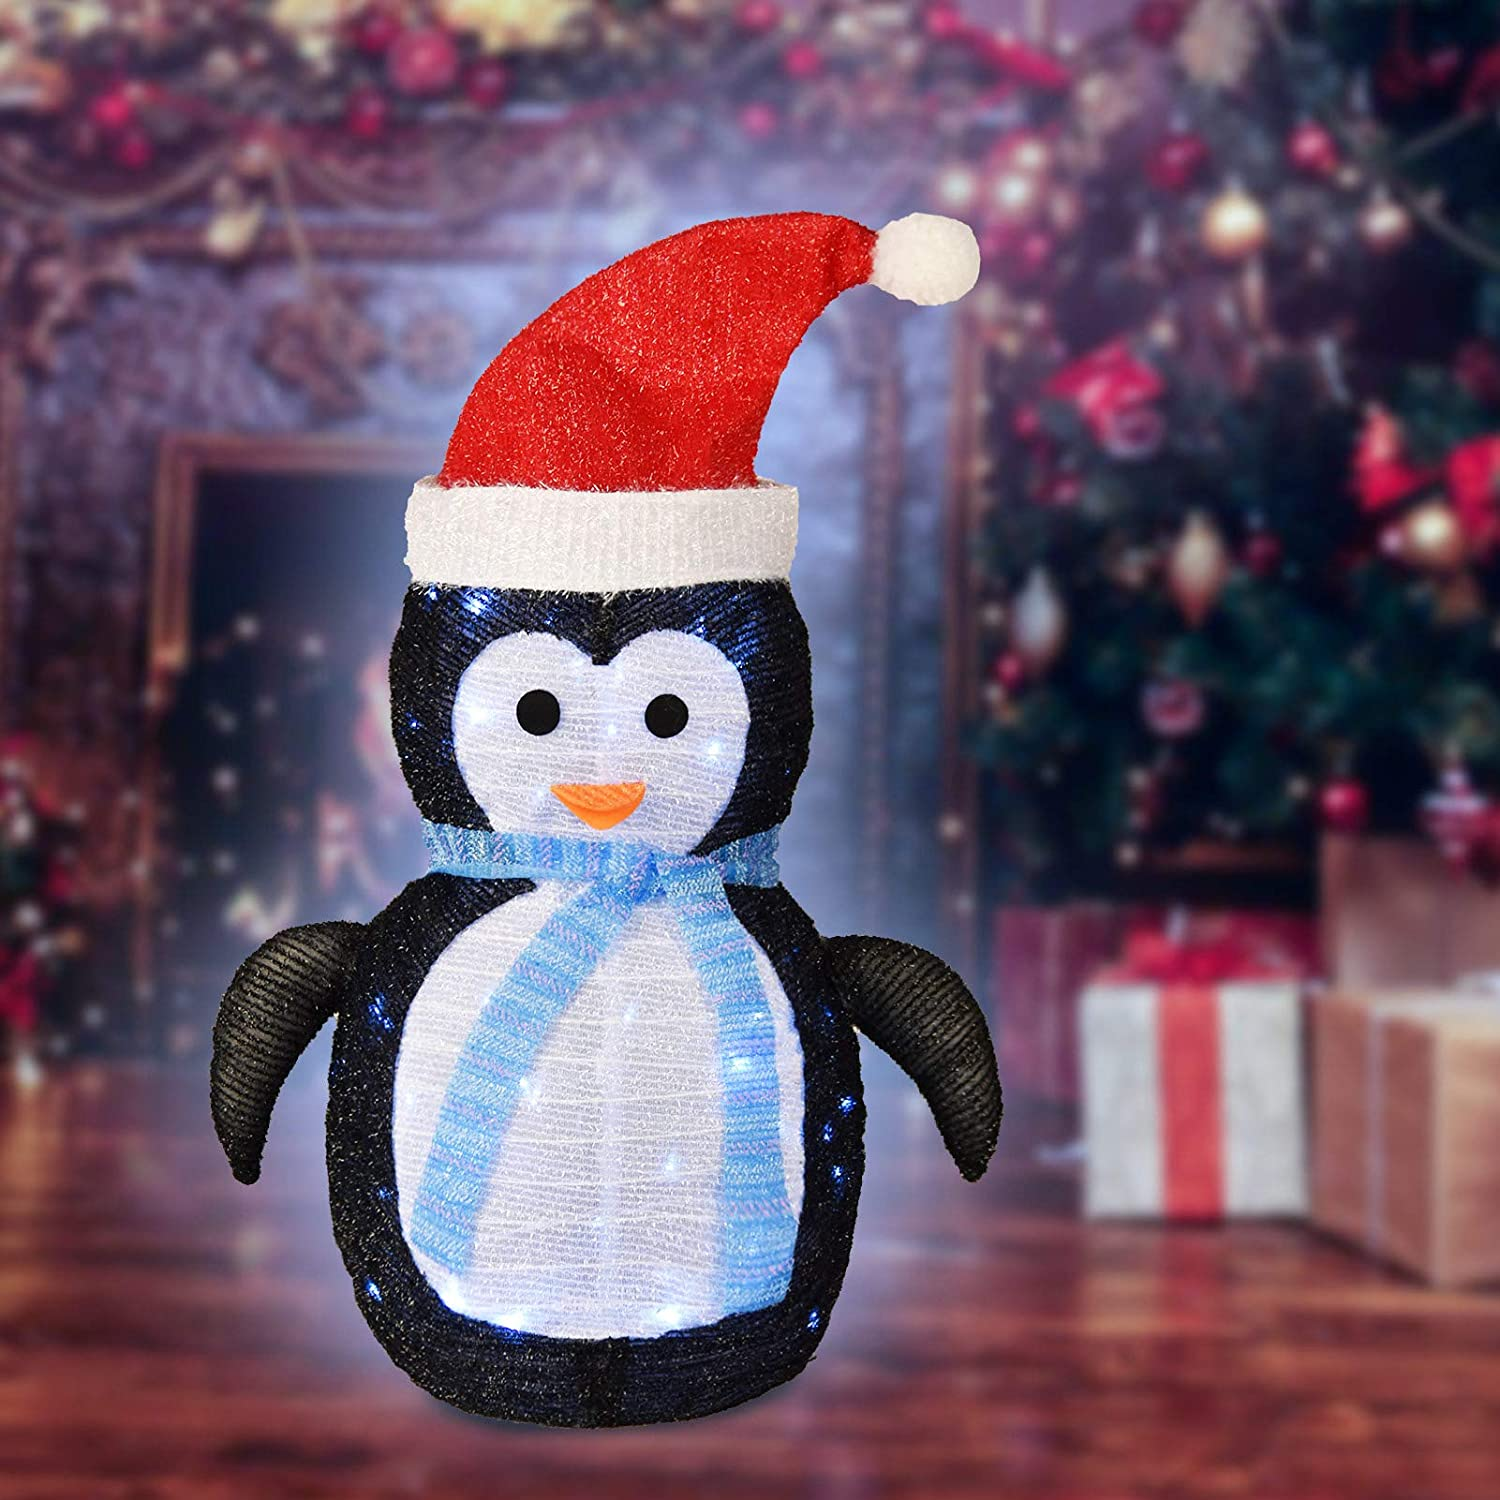 PIXFAIRY Christmas Standing Penguin Lawn Decoration with 40LED Lights, Christmas Decoration, Lawn and Porch Decoration Indoor Outdoor Decor